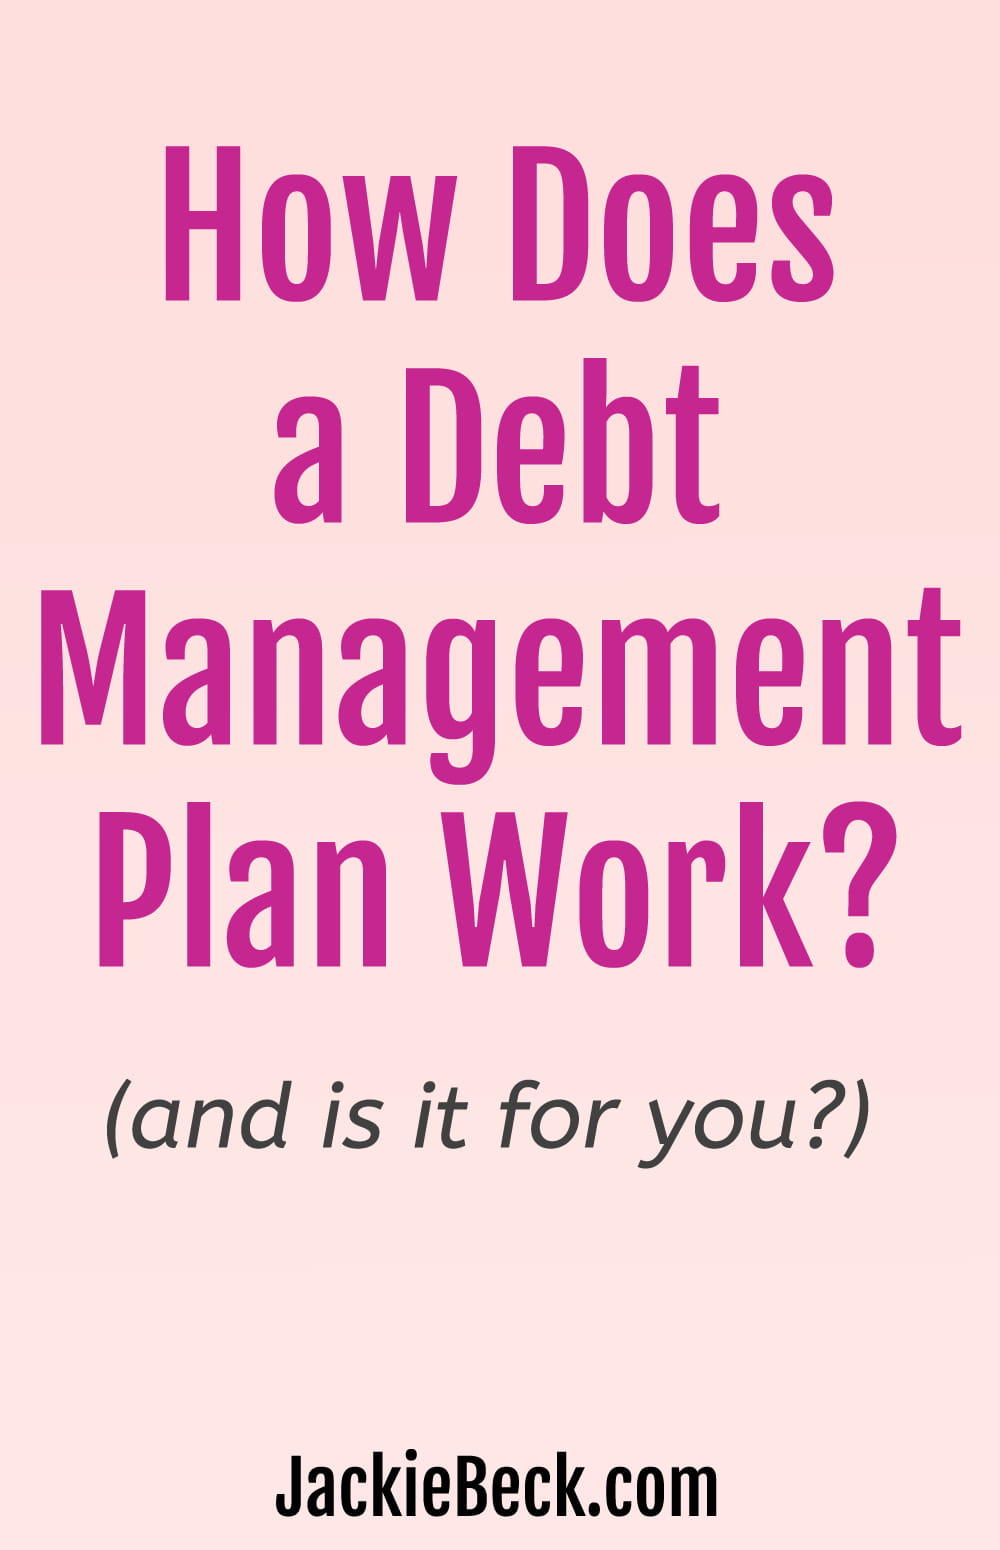 How does a debt management plan work? (And is it for you?)